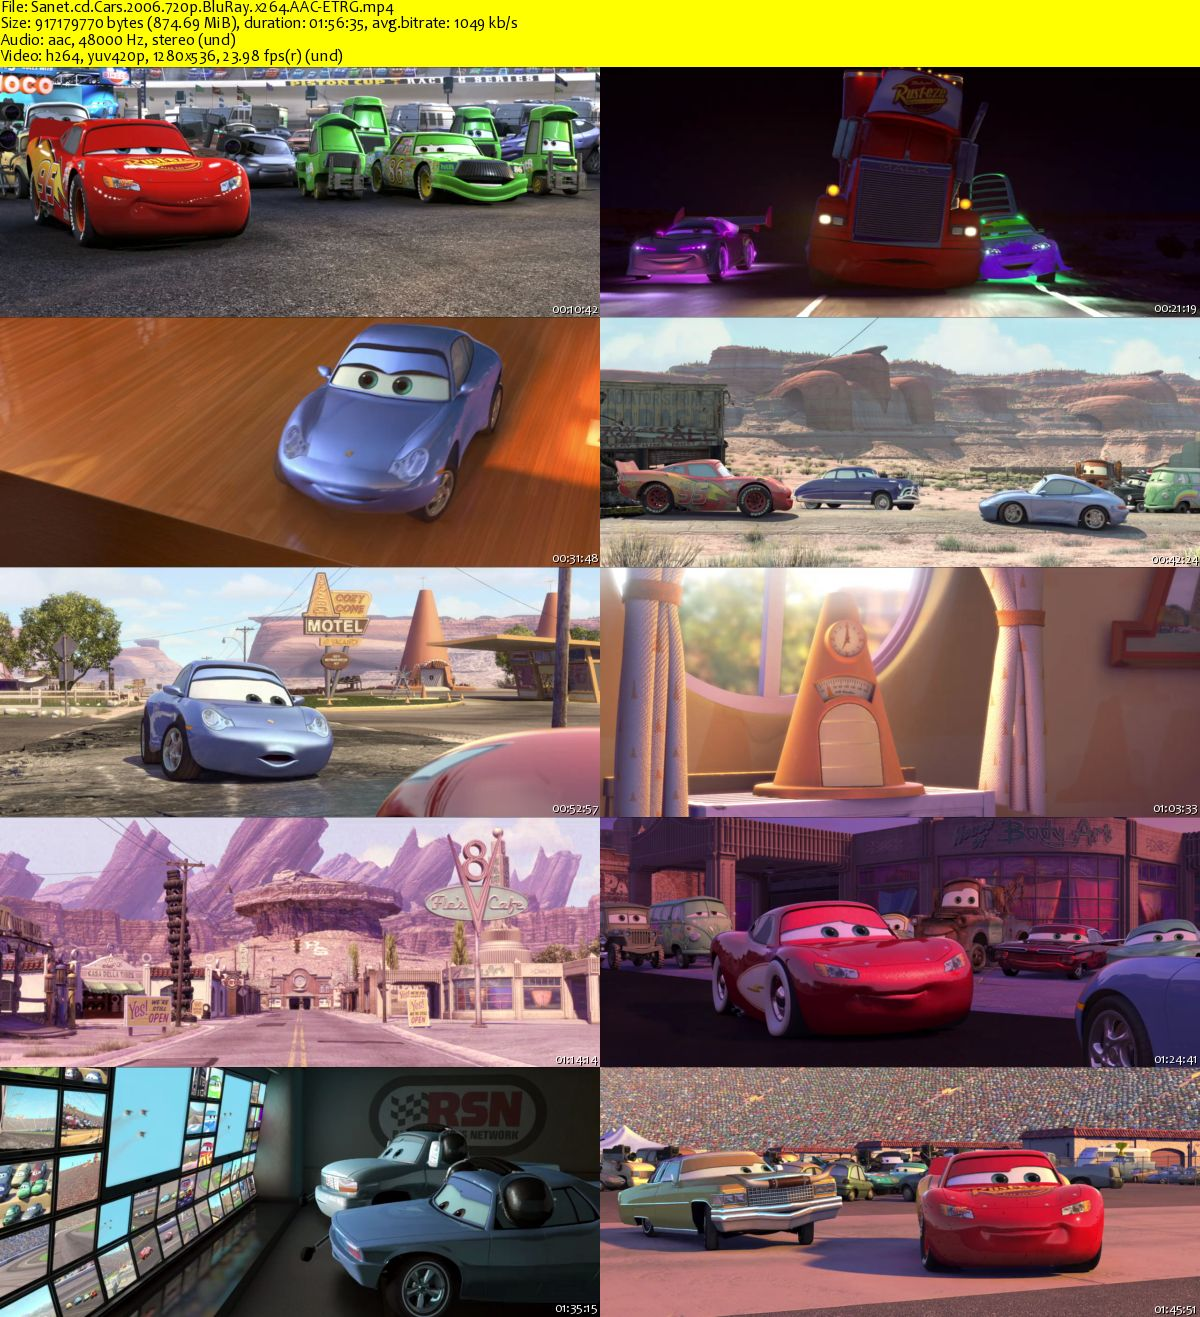 Download Cars 2006 720p Bluray X264 Aac Etrg Softarchive